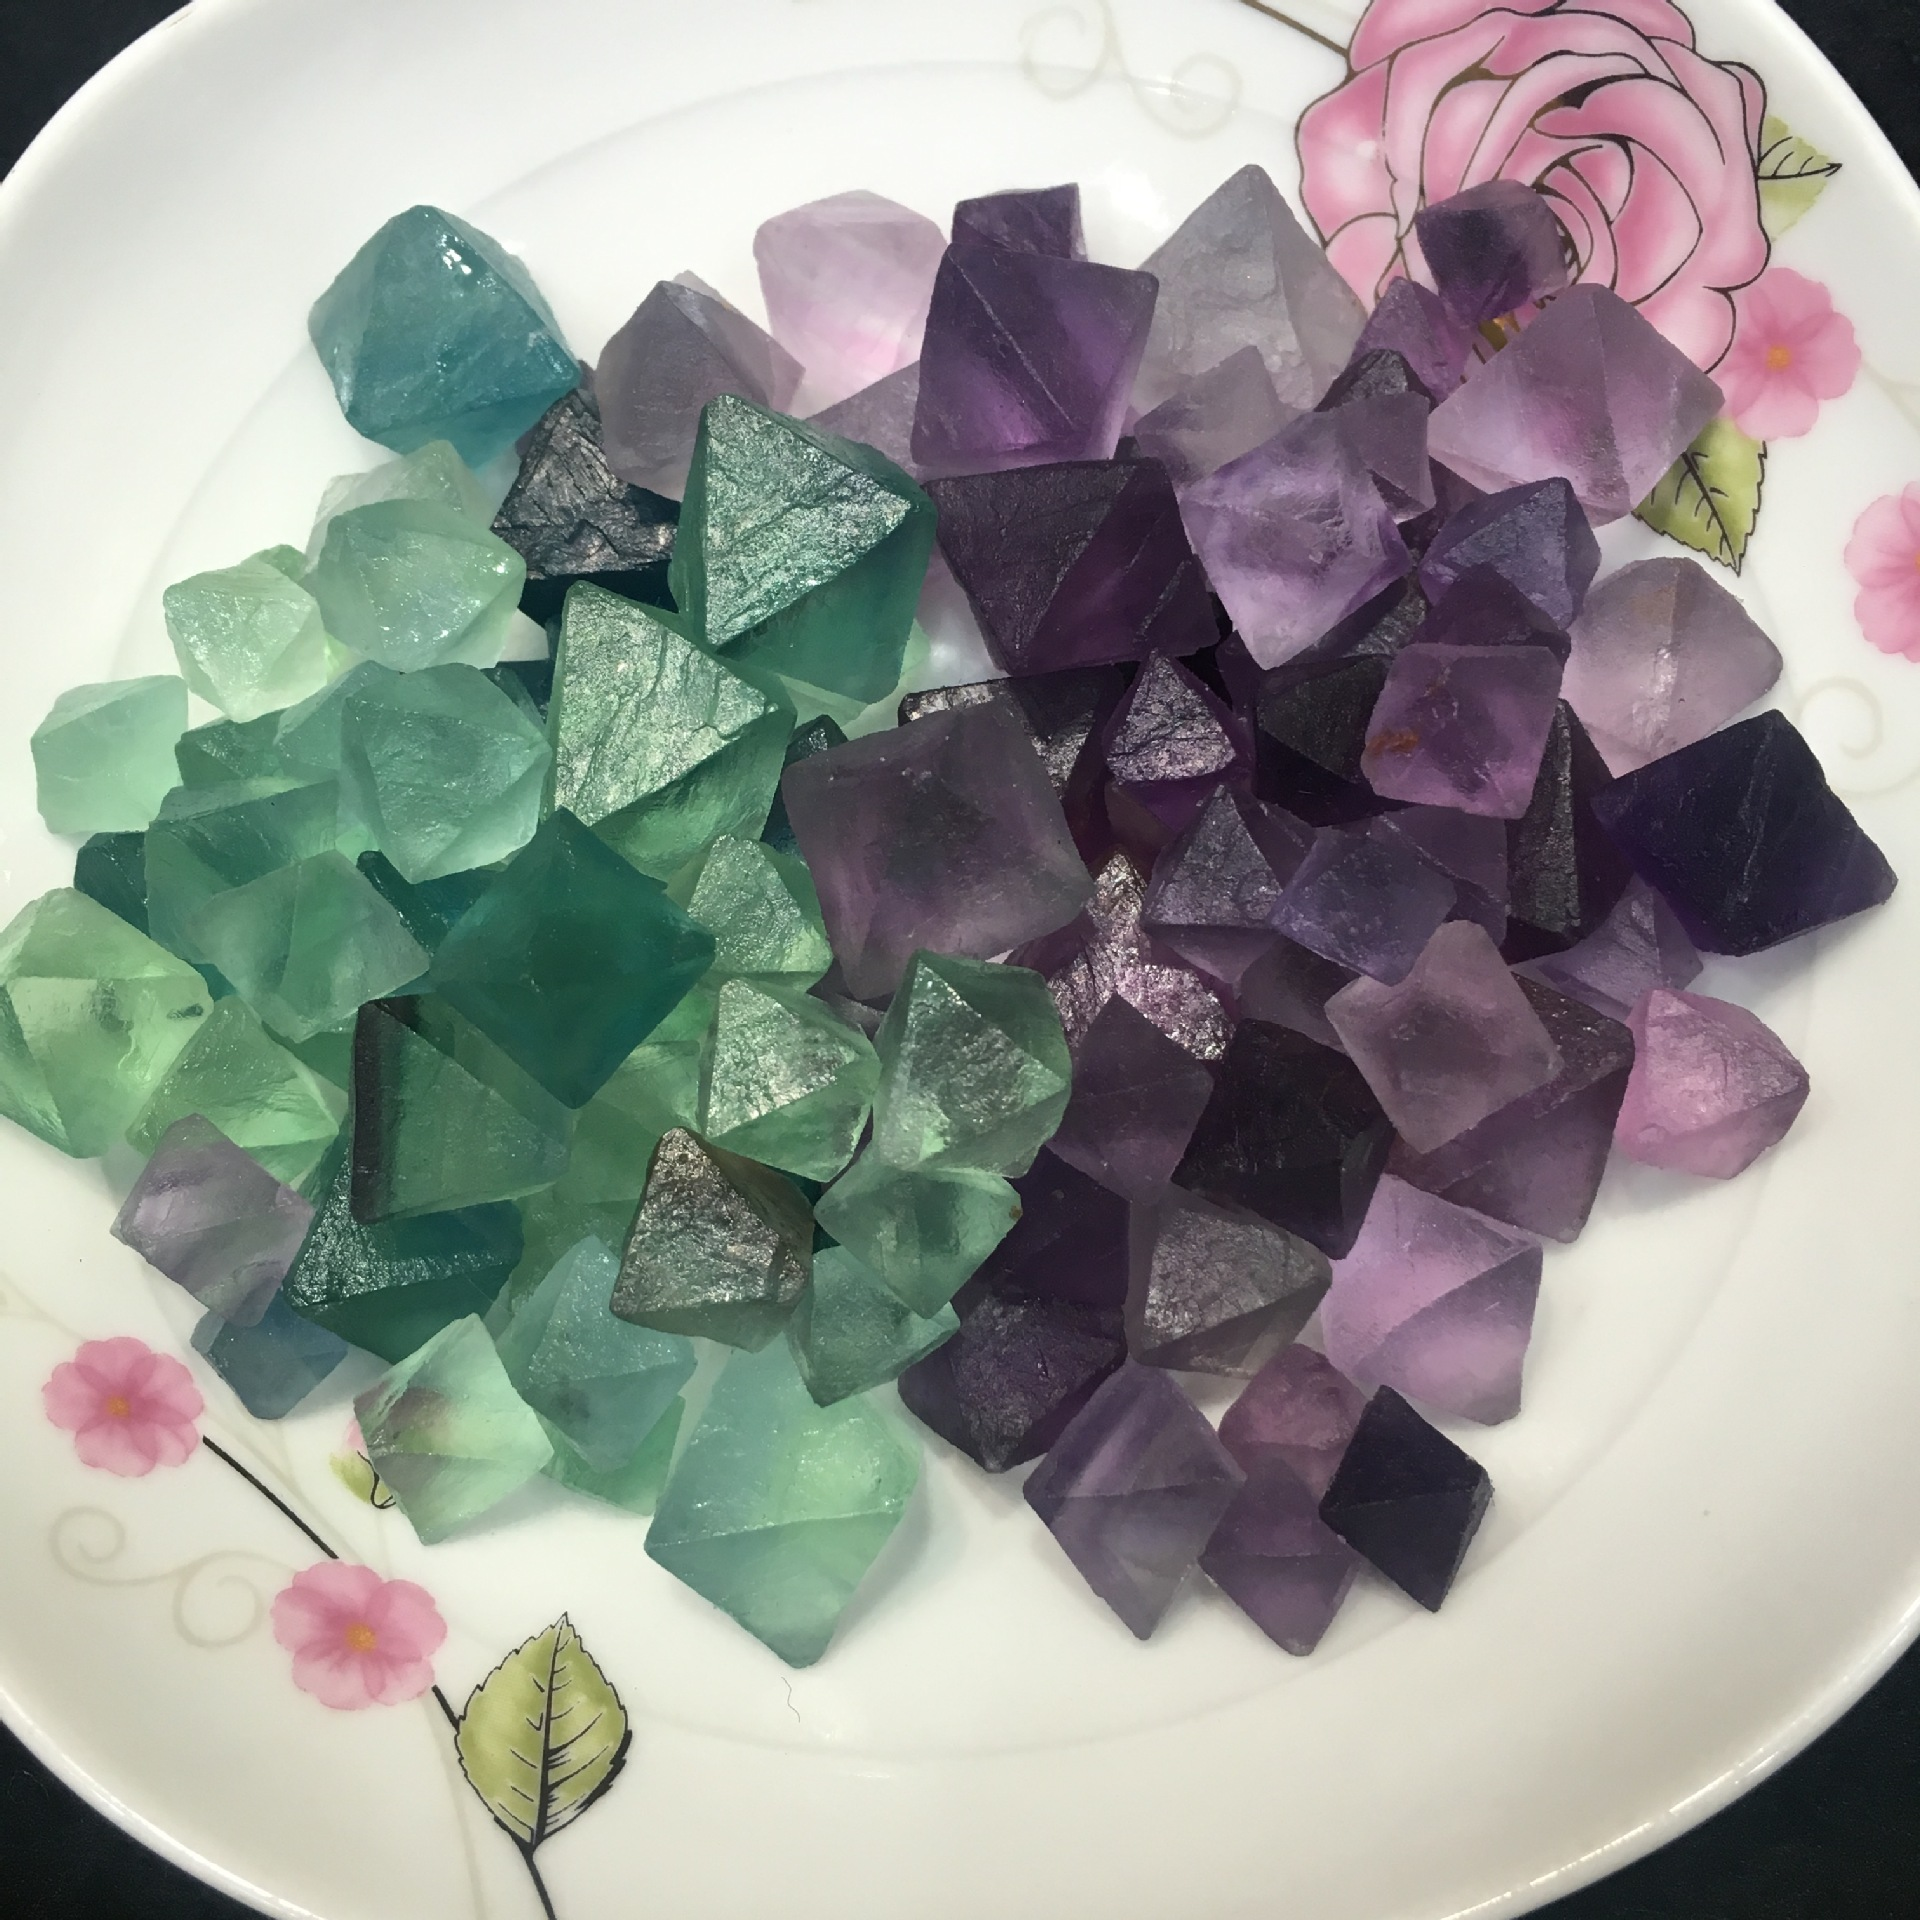 50g 1.5-2.5cm Tumbled Gemstone Natural Fluorite Octahedral Cube Small Natural Stones Fluorite Quartz Crystal A001